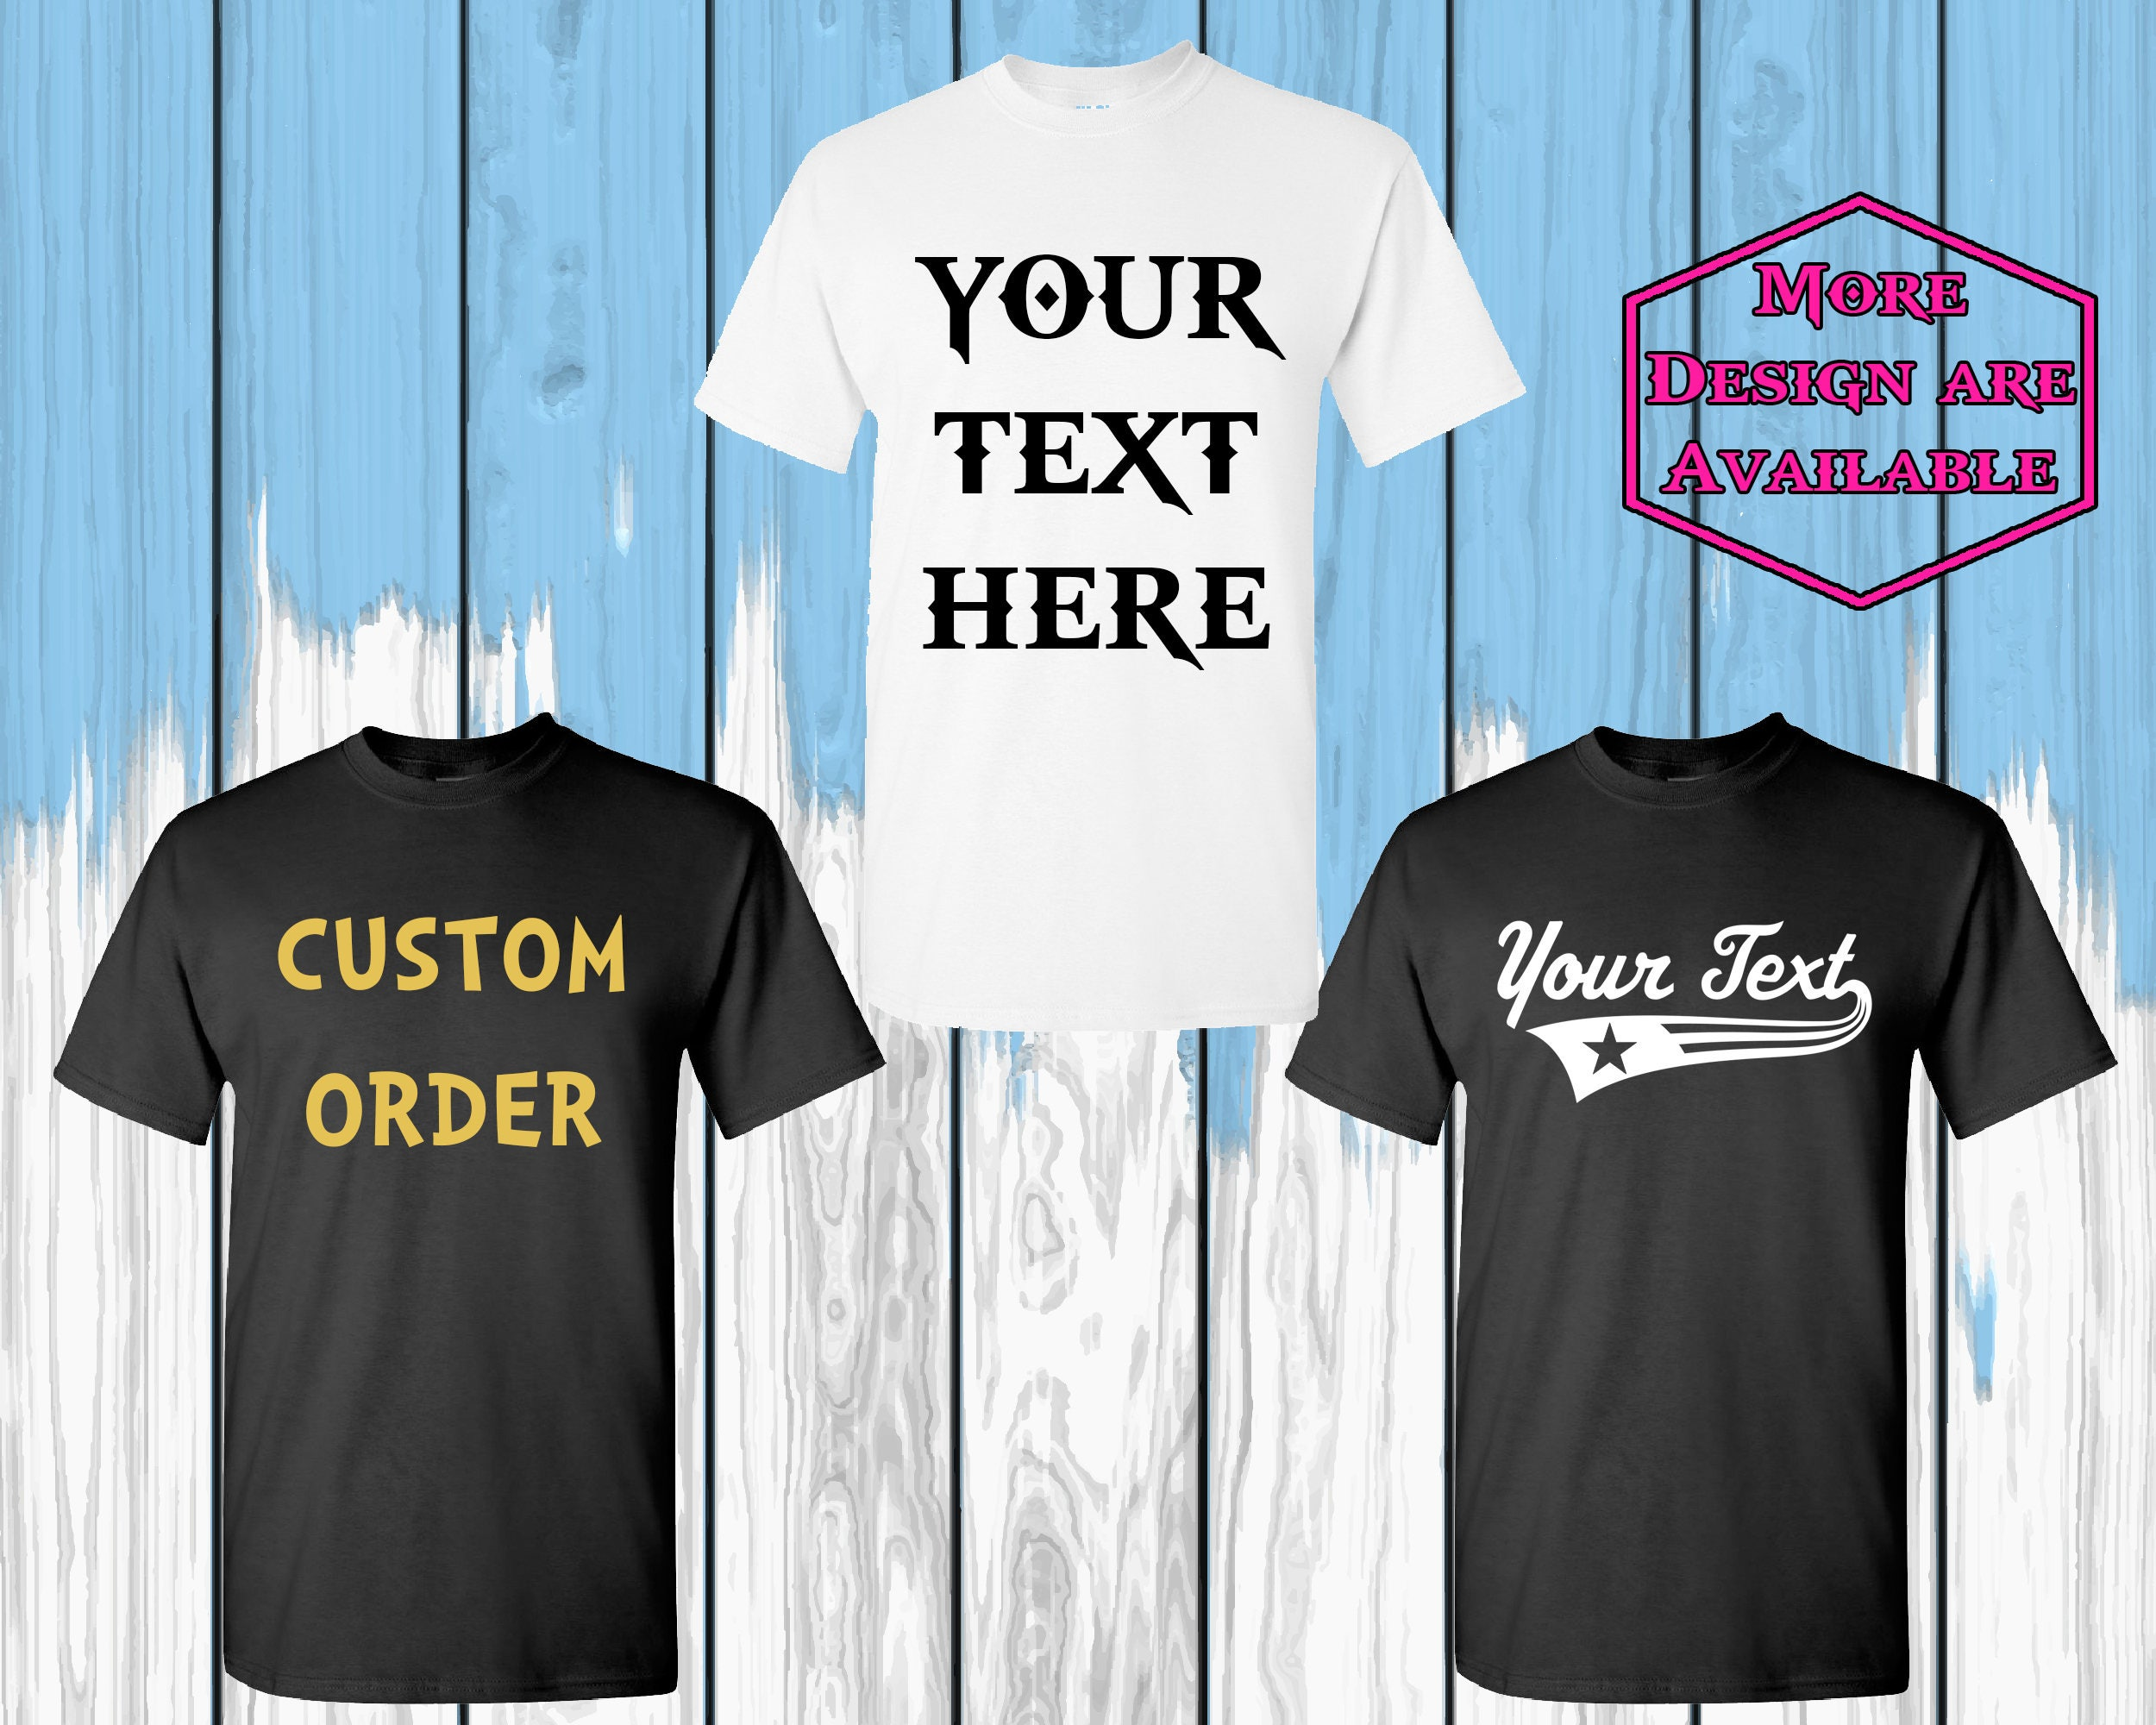 Cheap T Shirts Design Your Own Chad Crowley Productions